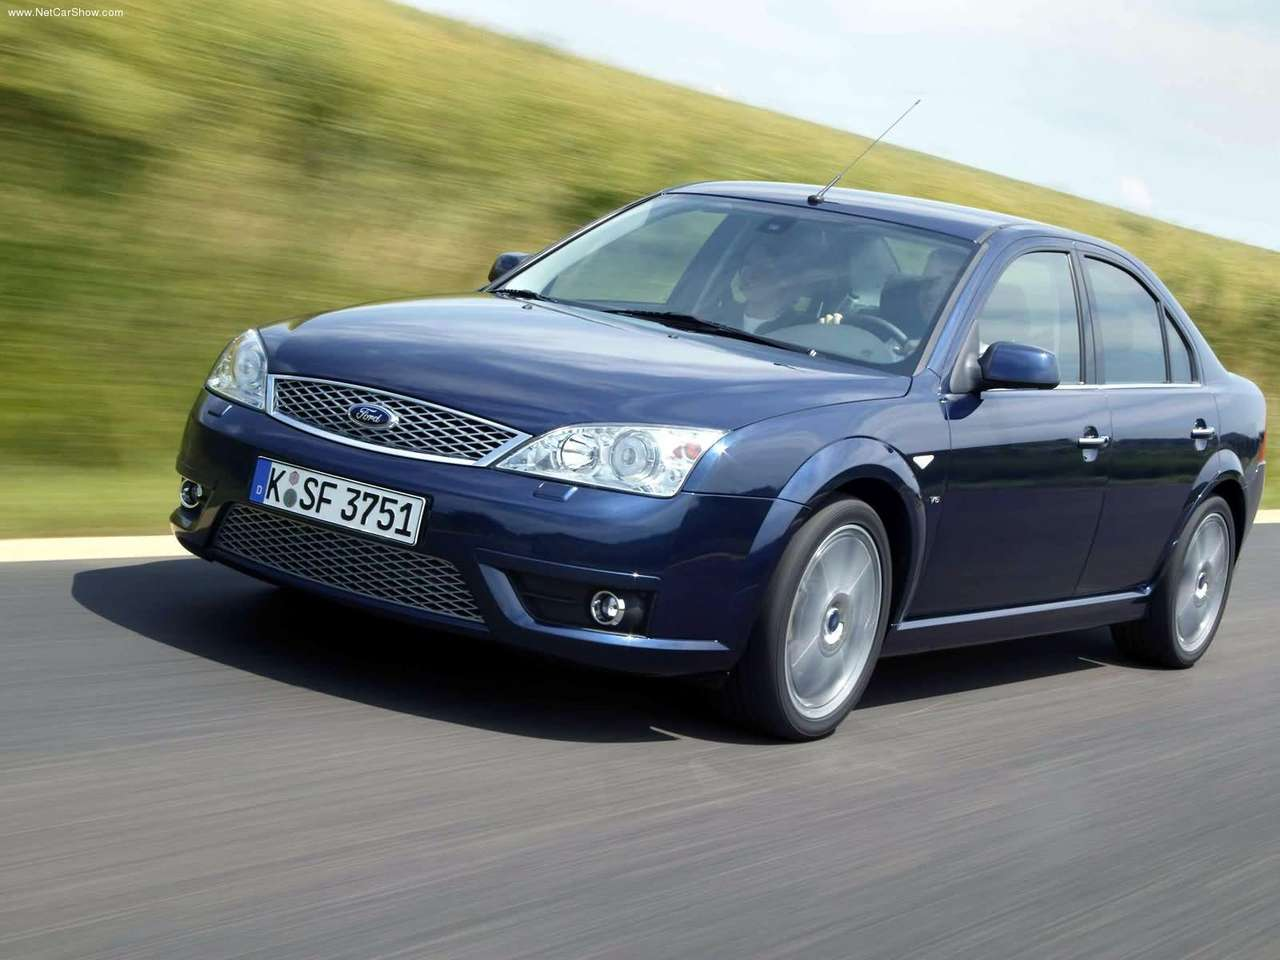 Ford Mondeo 2004 photo - 2